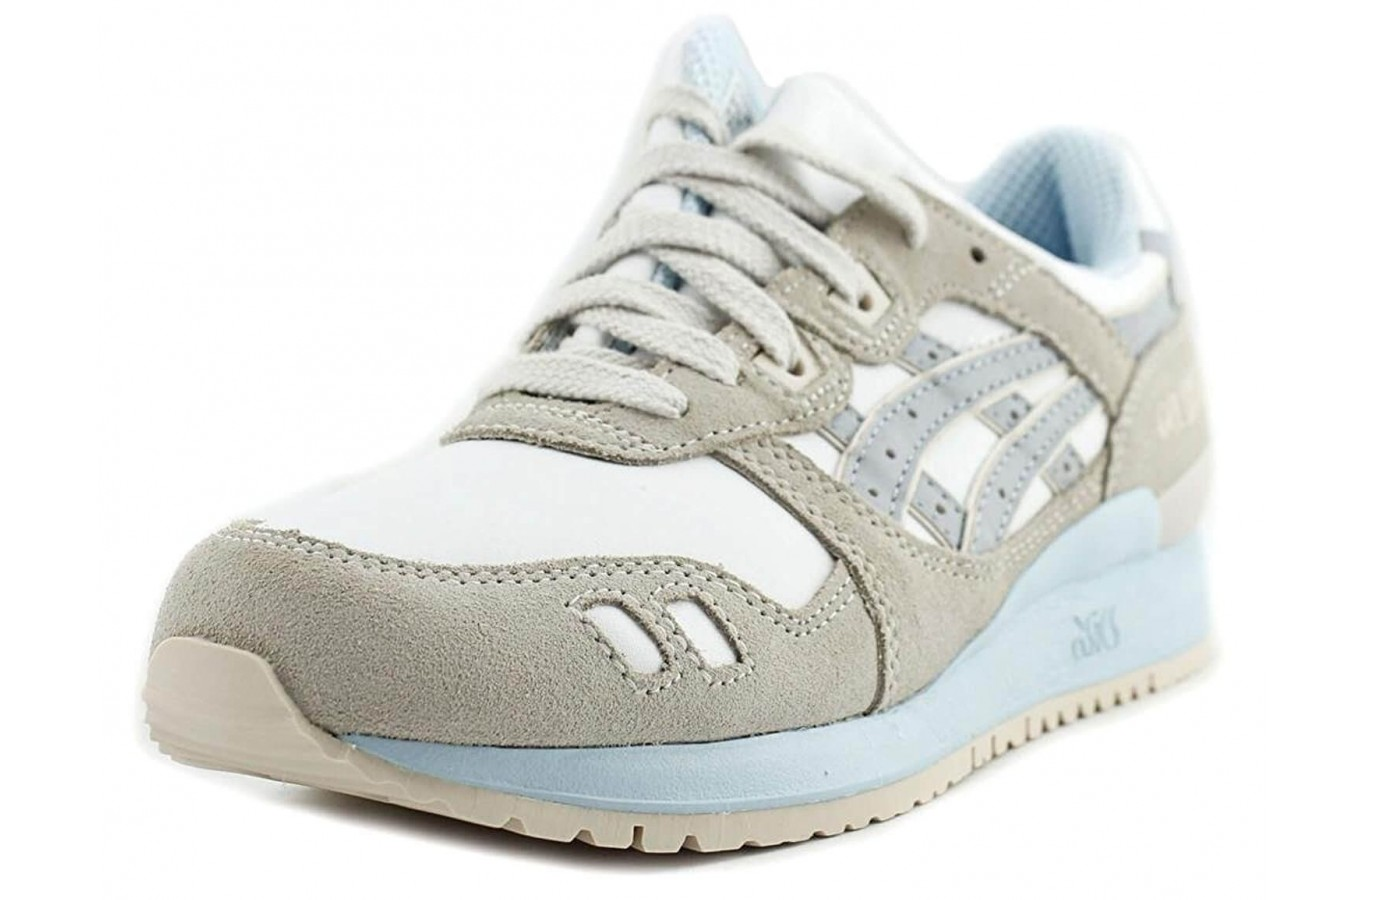 The Asics Gel Lyte III features GEL cushioning